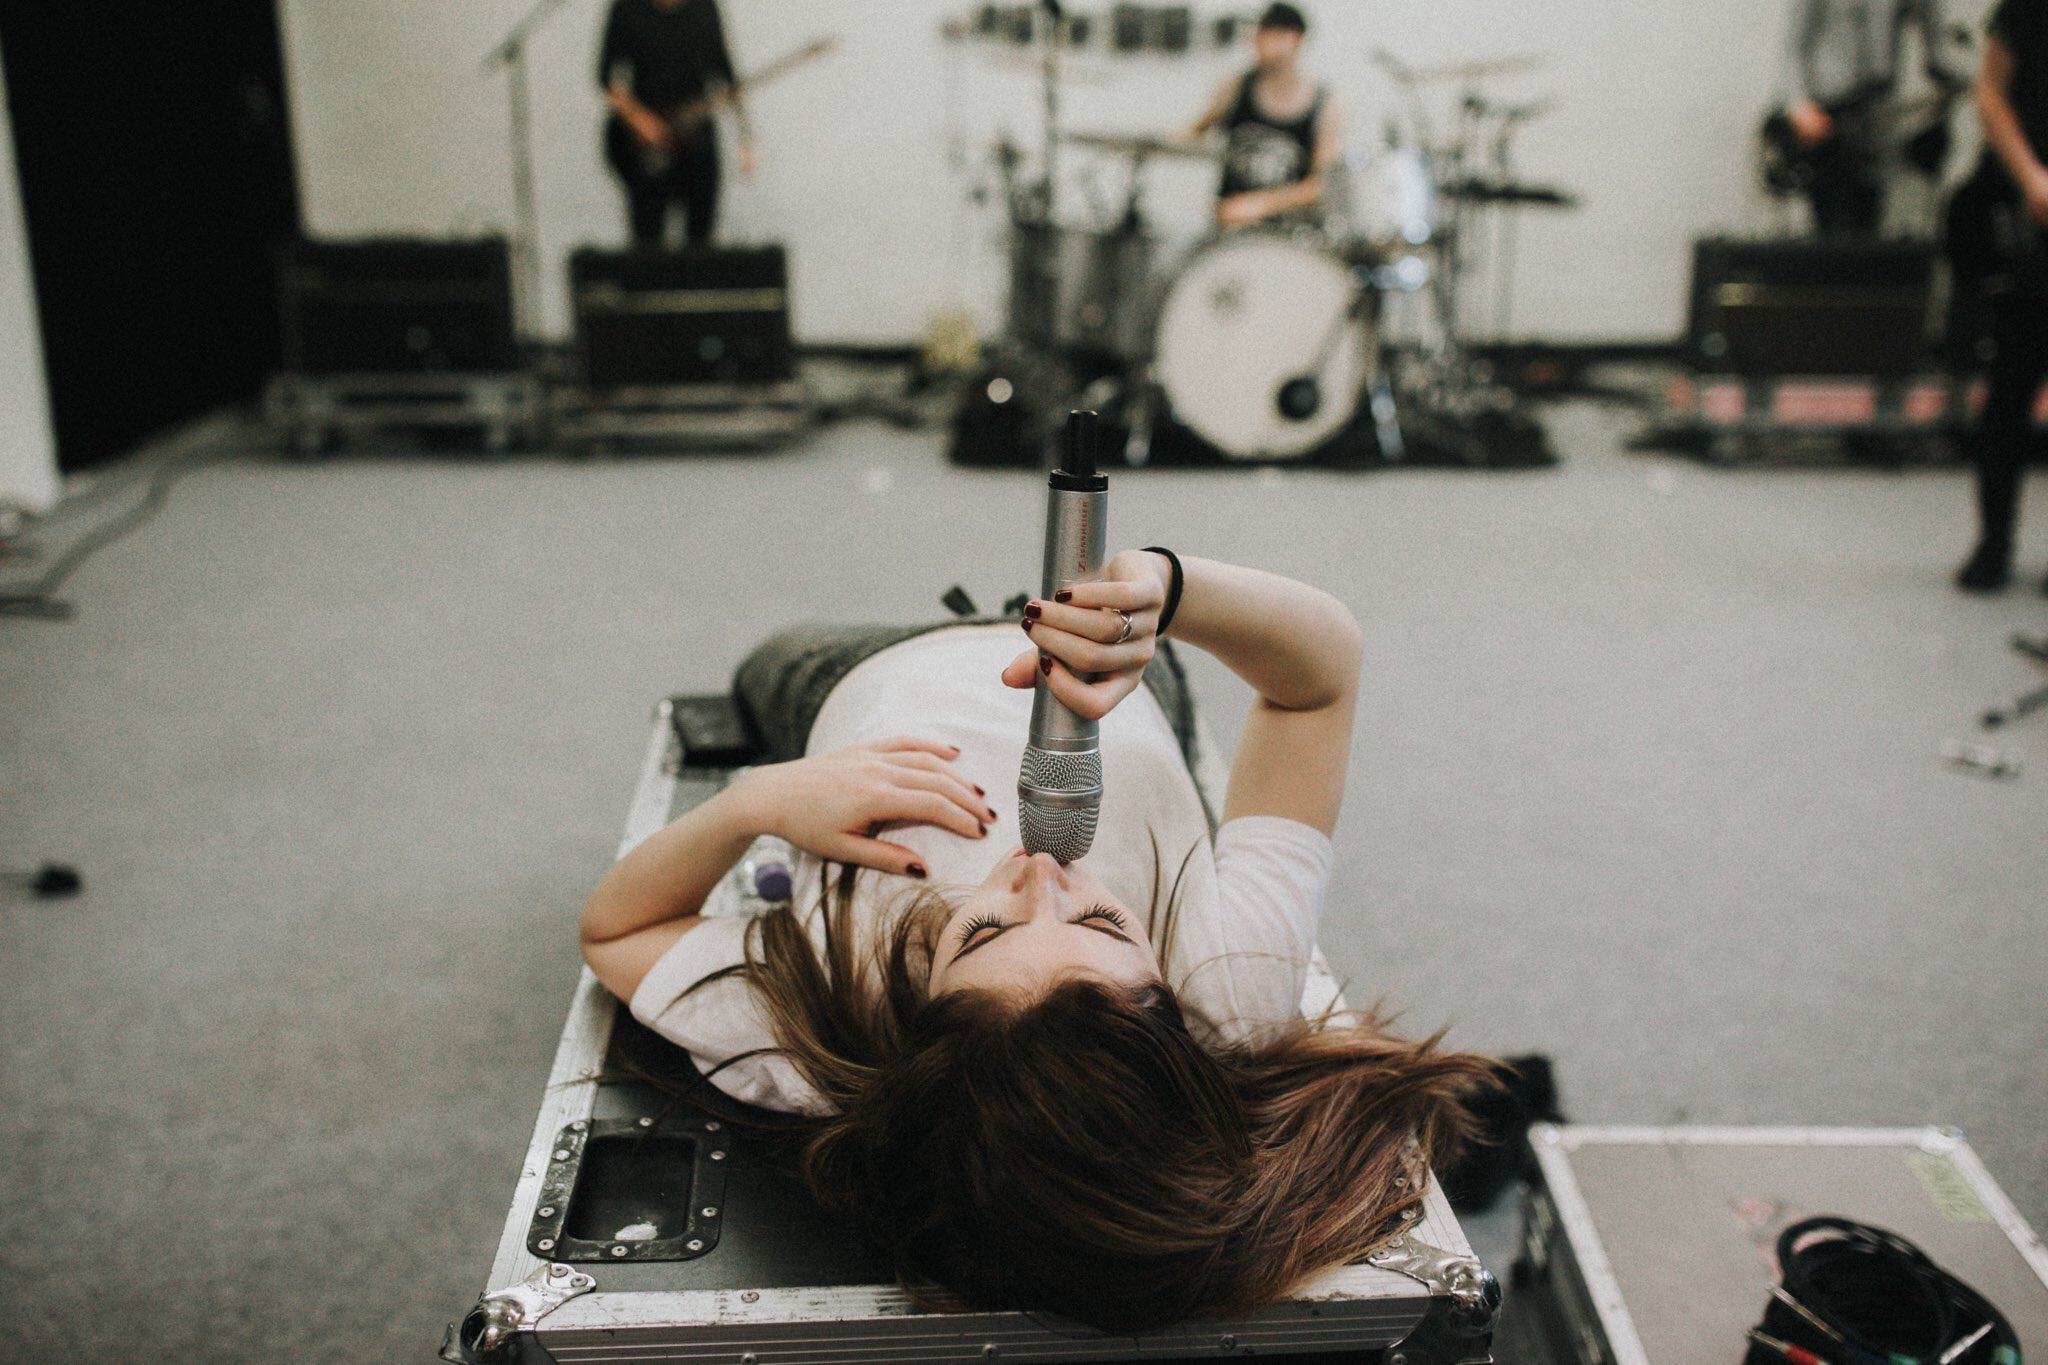 We're sending @ATC_BAND's @ChrissyCostanza allll the birthday wishes today (and you should too)!! ���� https://t.co/oRoVXcP7uE